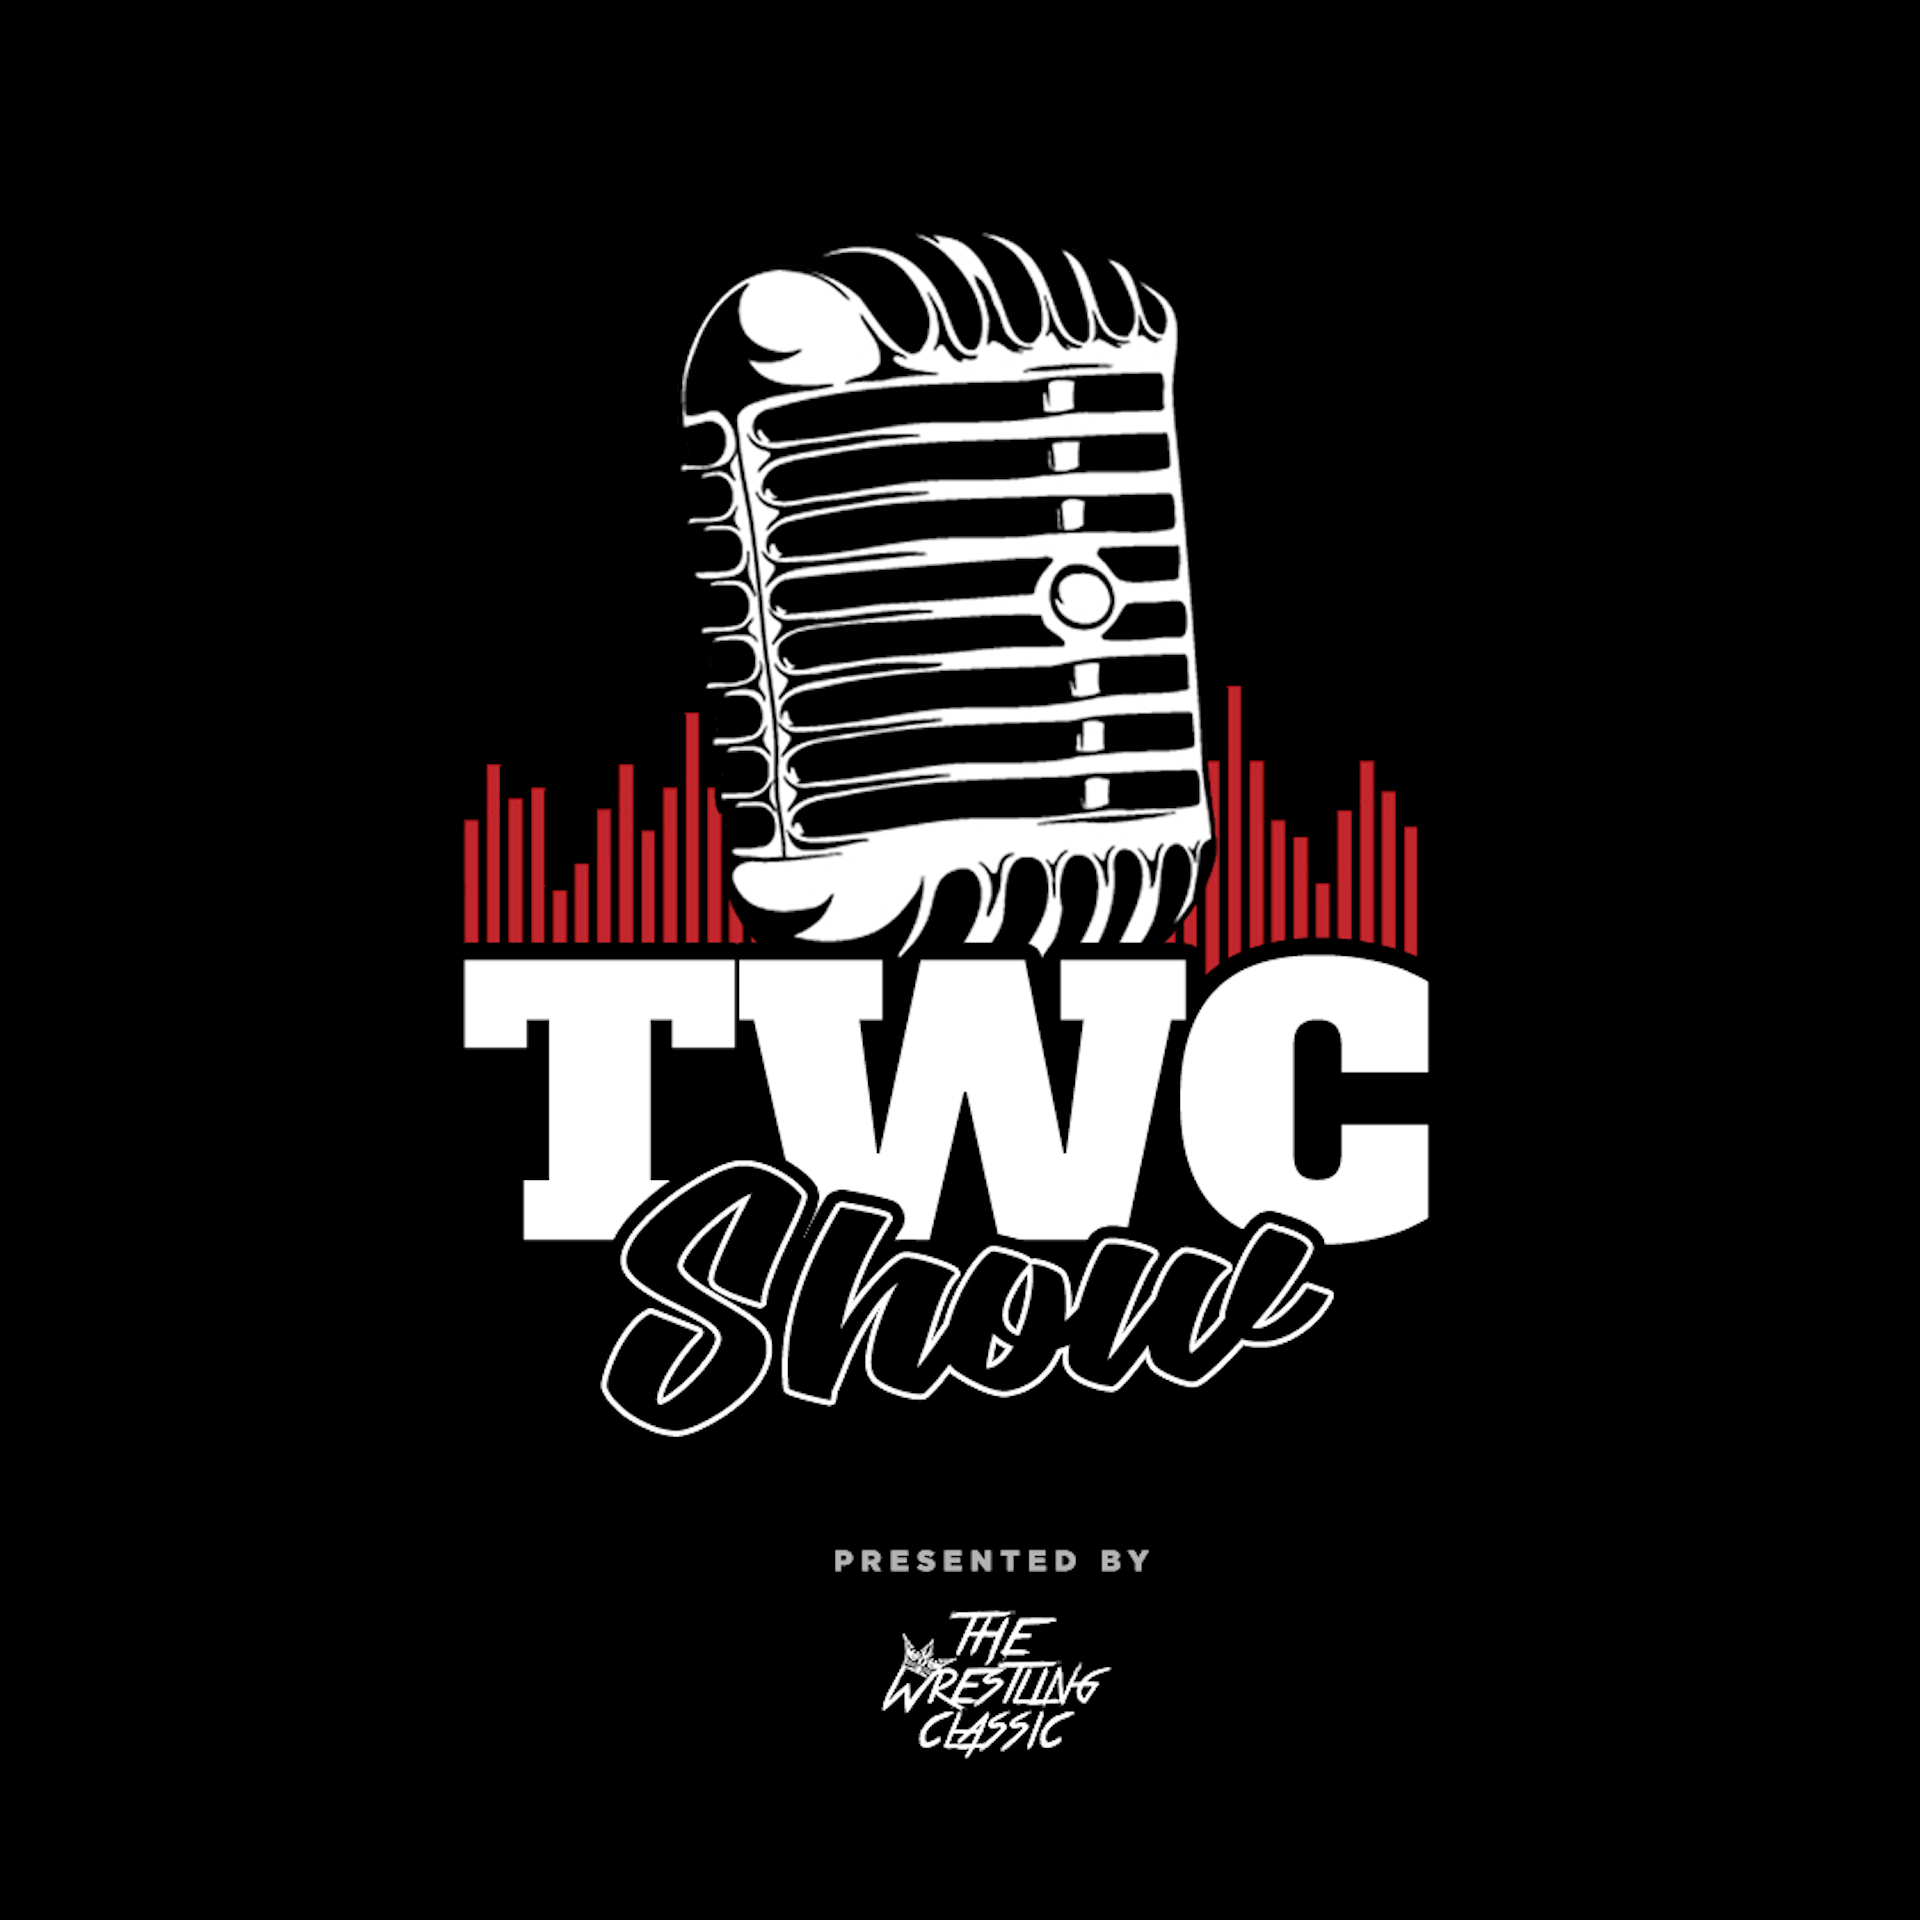 TWC Show – Episode 07 – A Little Bit of the Bubbly